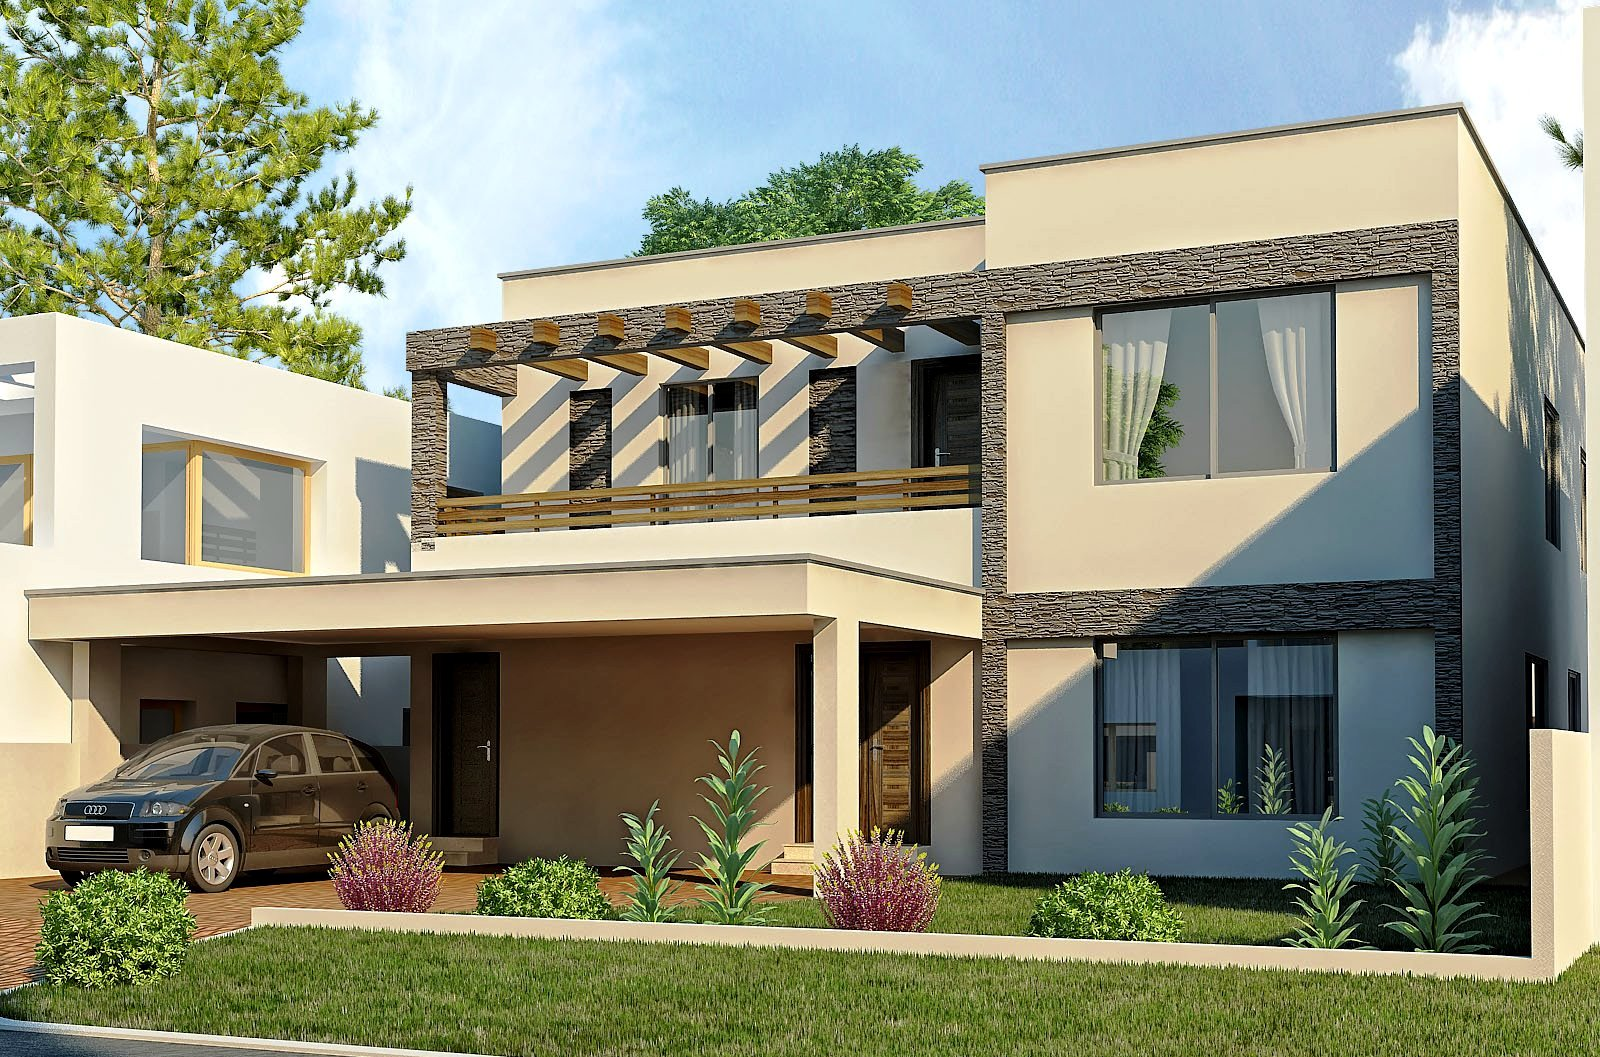 New home designs latest modern homes exterior designs views for Modern house exterior remodel